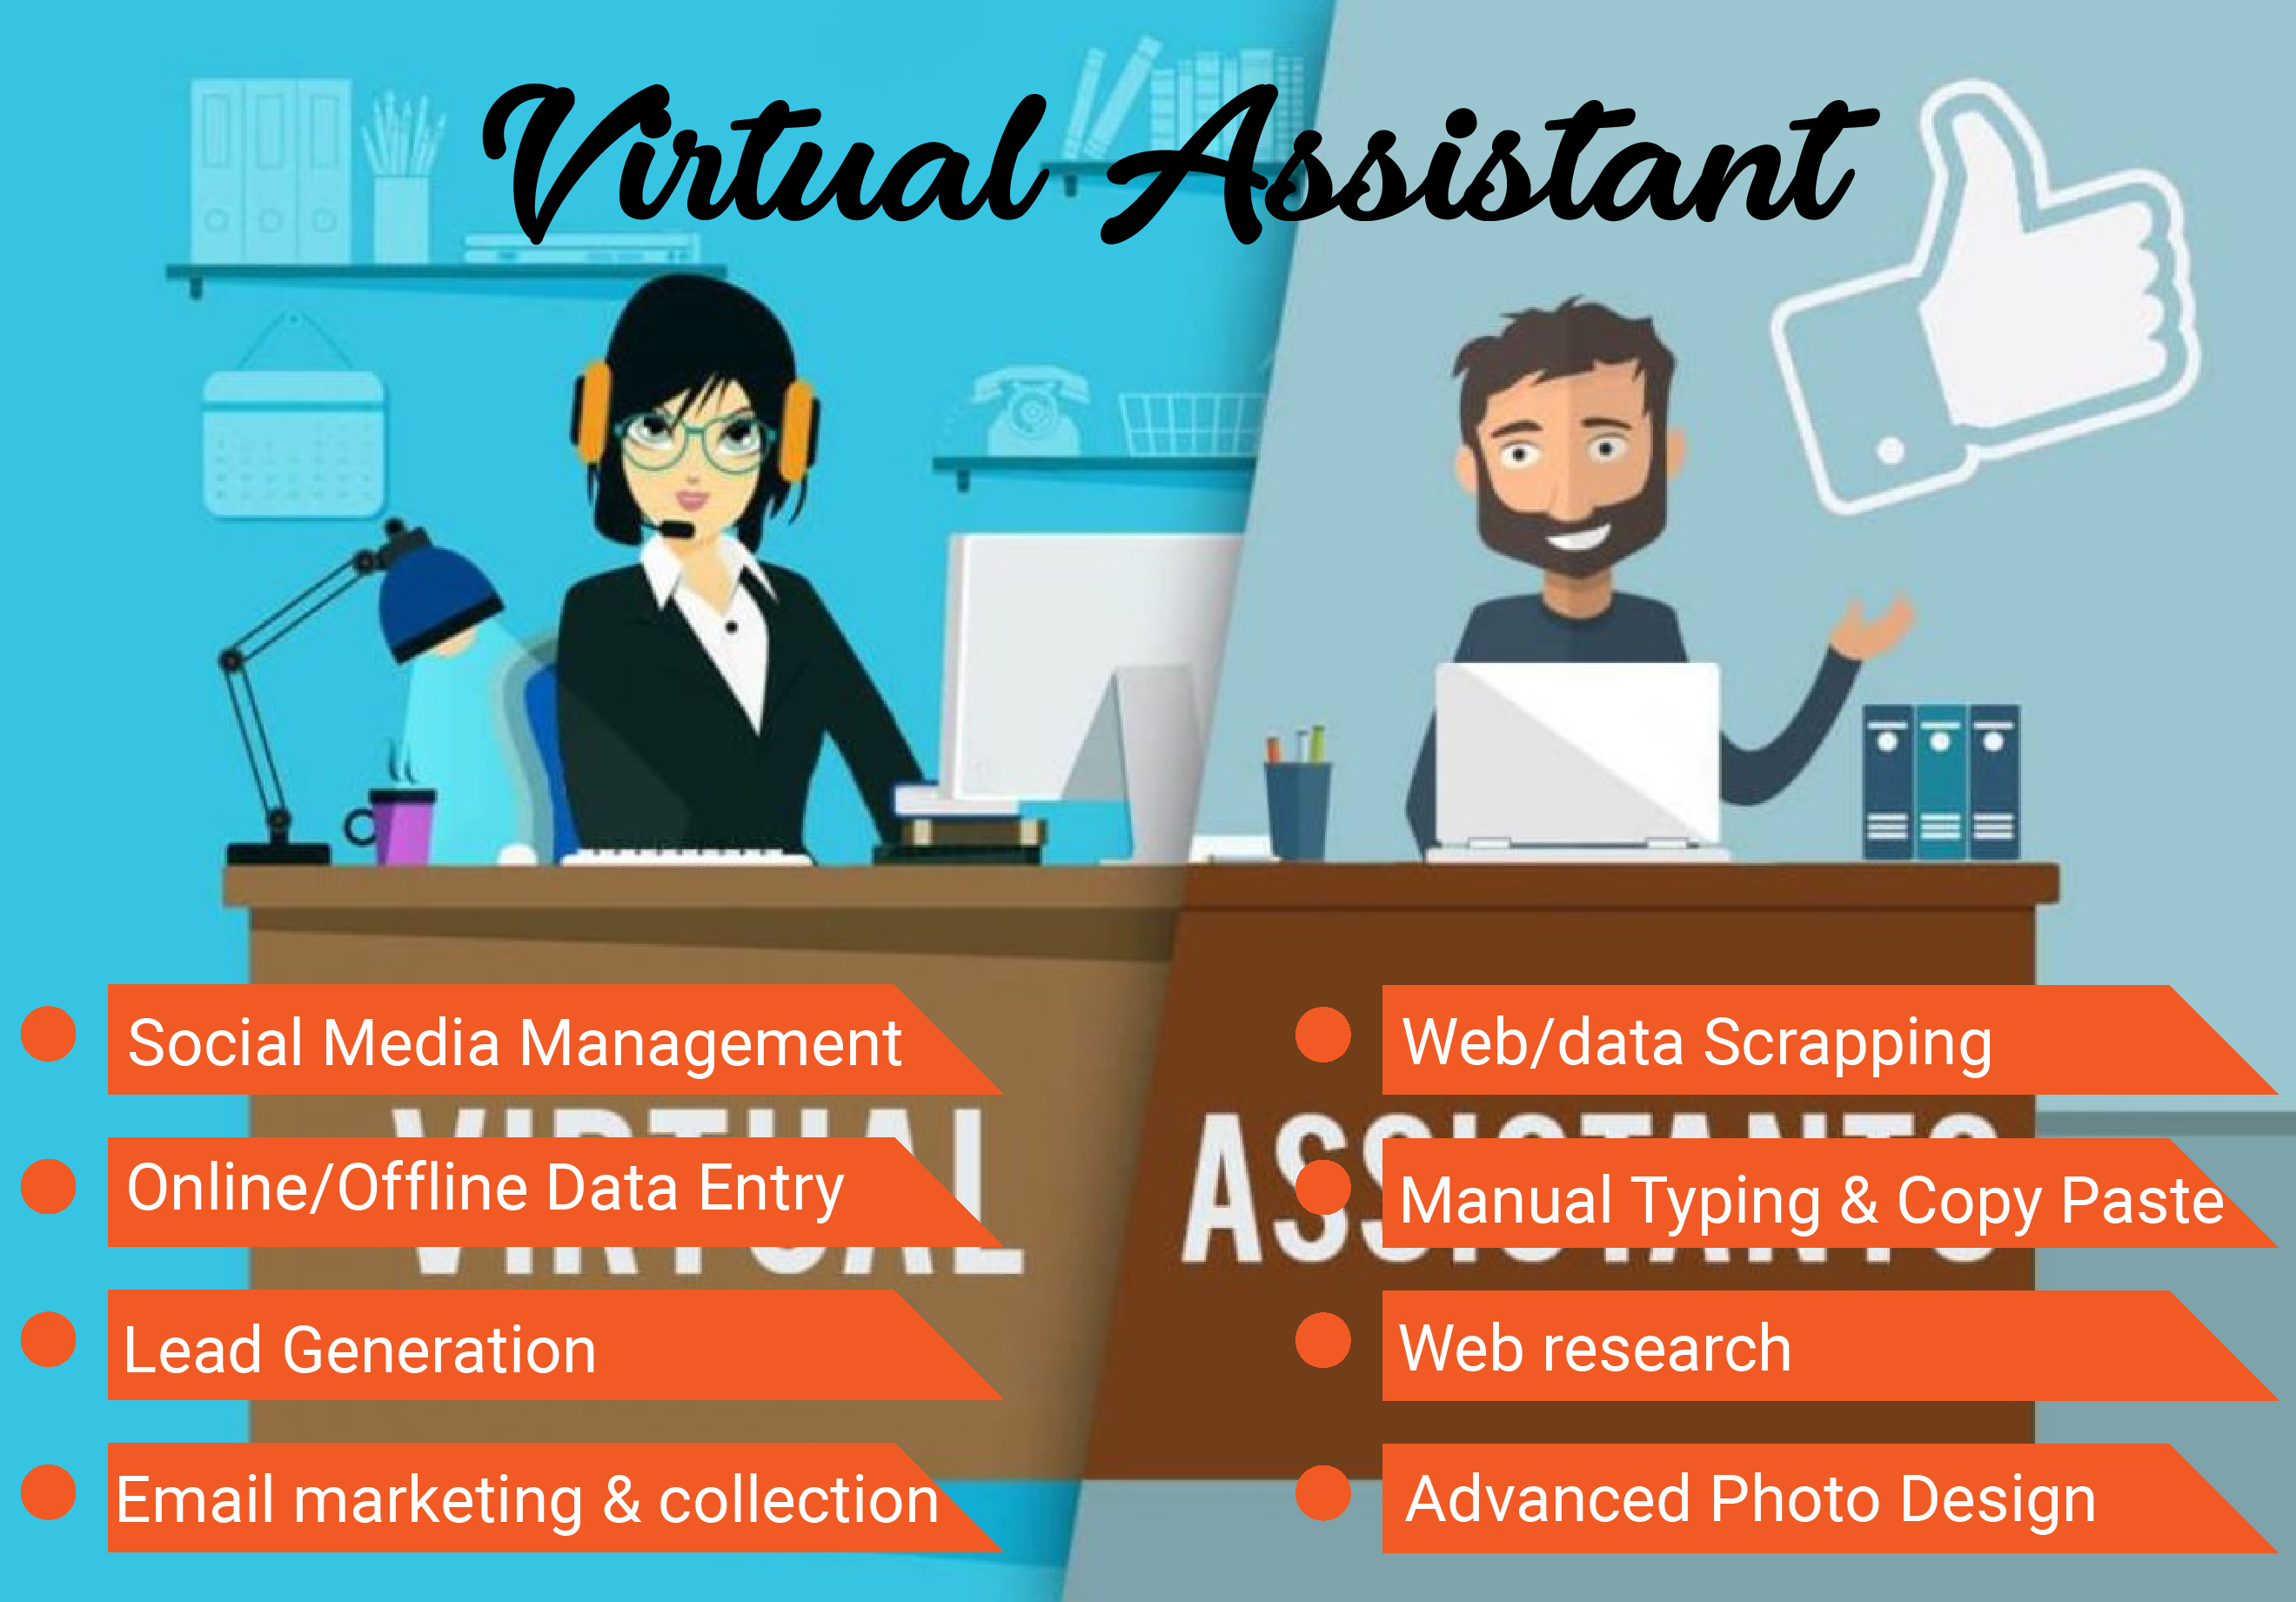 I will be your dedicated Virtual Assistant for 1 hour